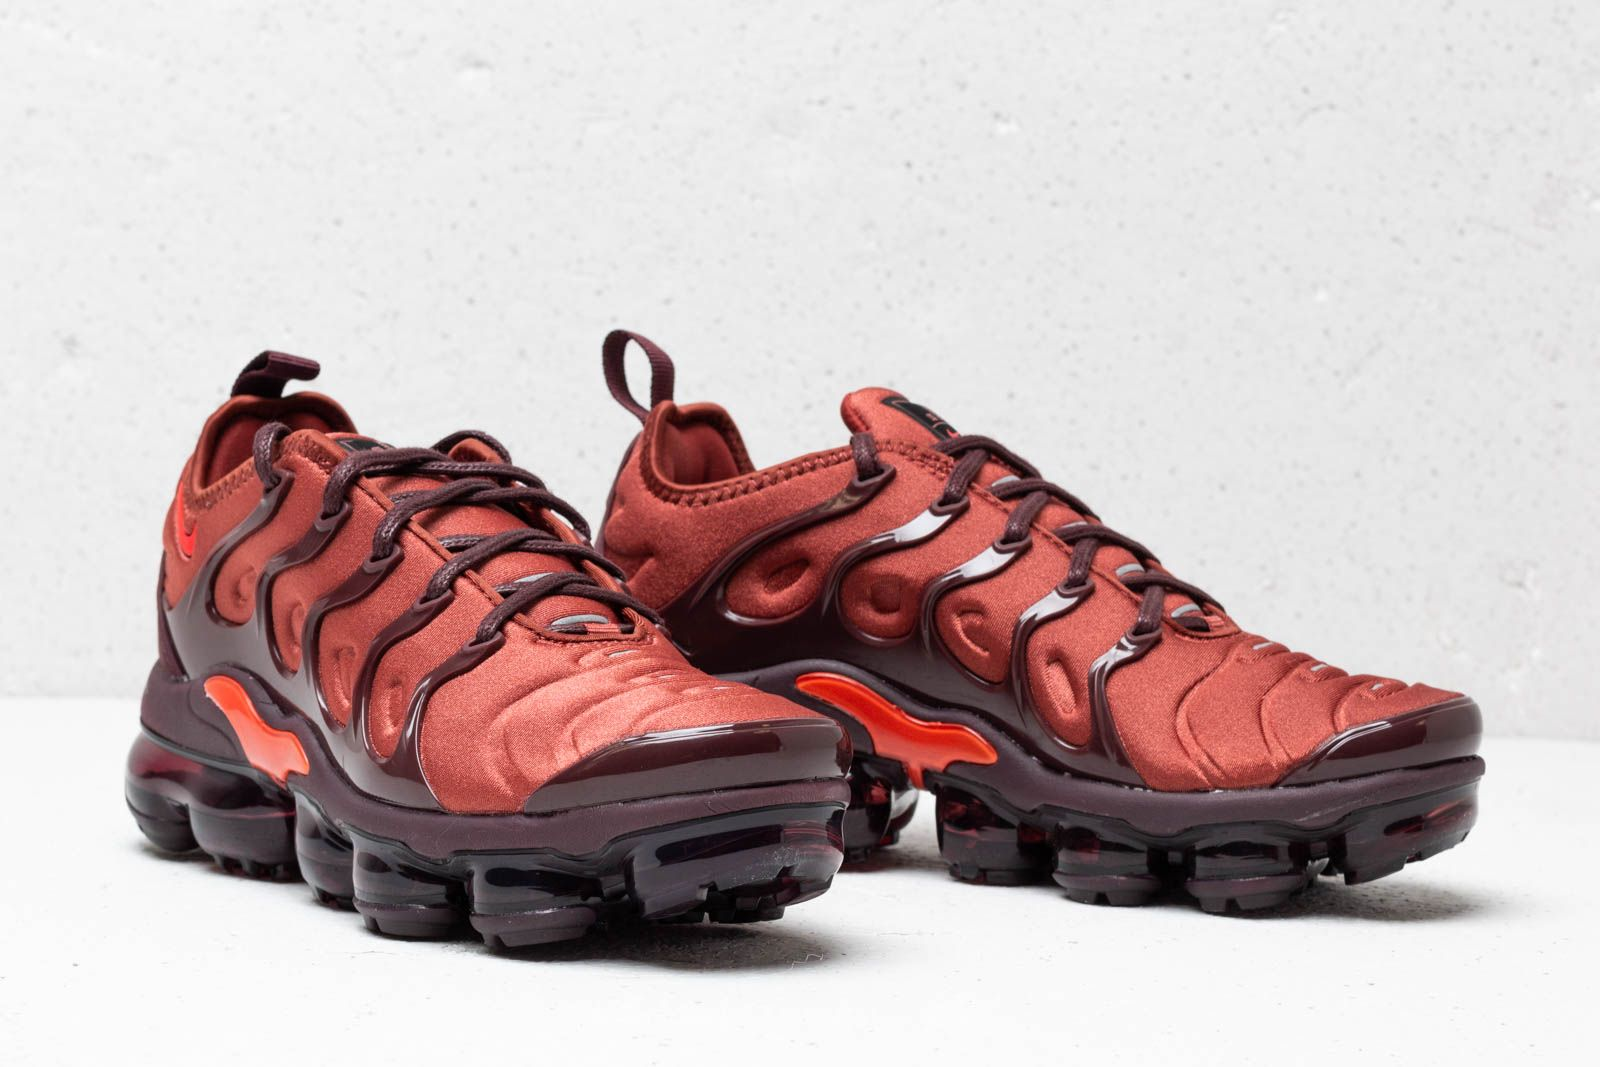 official photos bcde4 02f93 Nike Wmns Air Vapormax Plus Burnt Orange/ Habanero Red ...